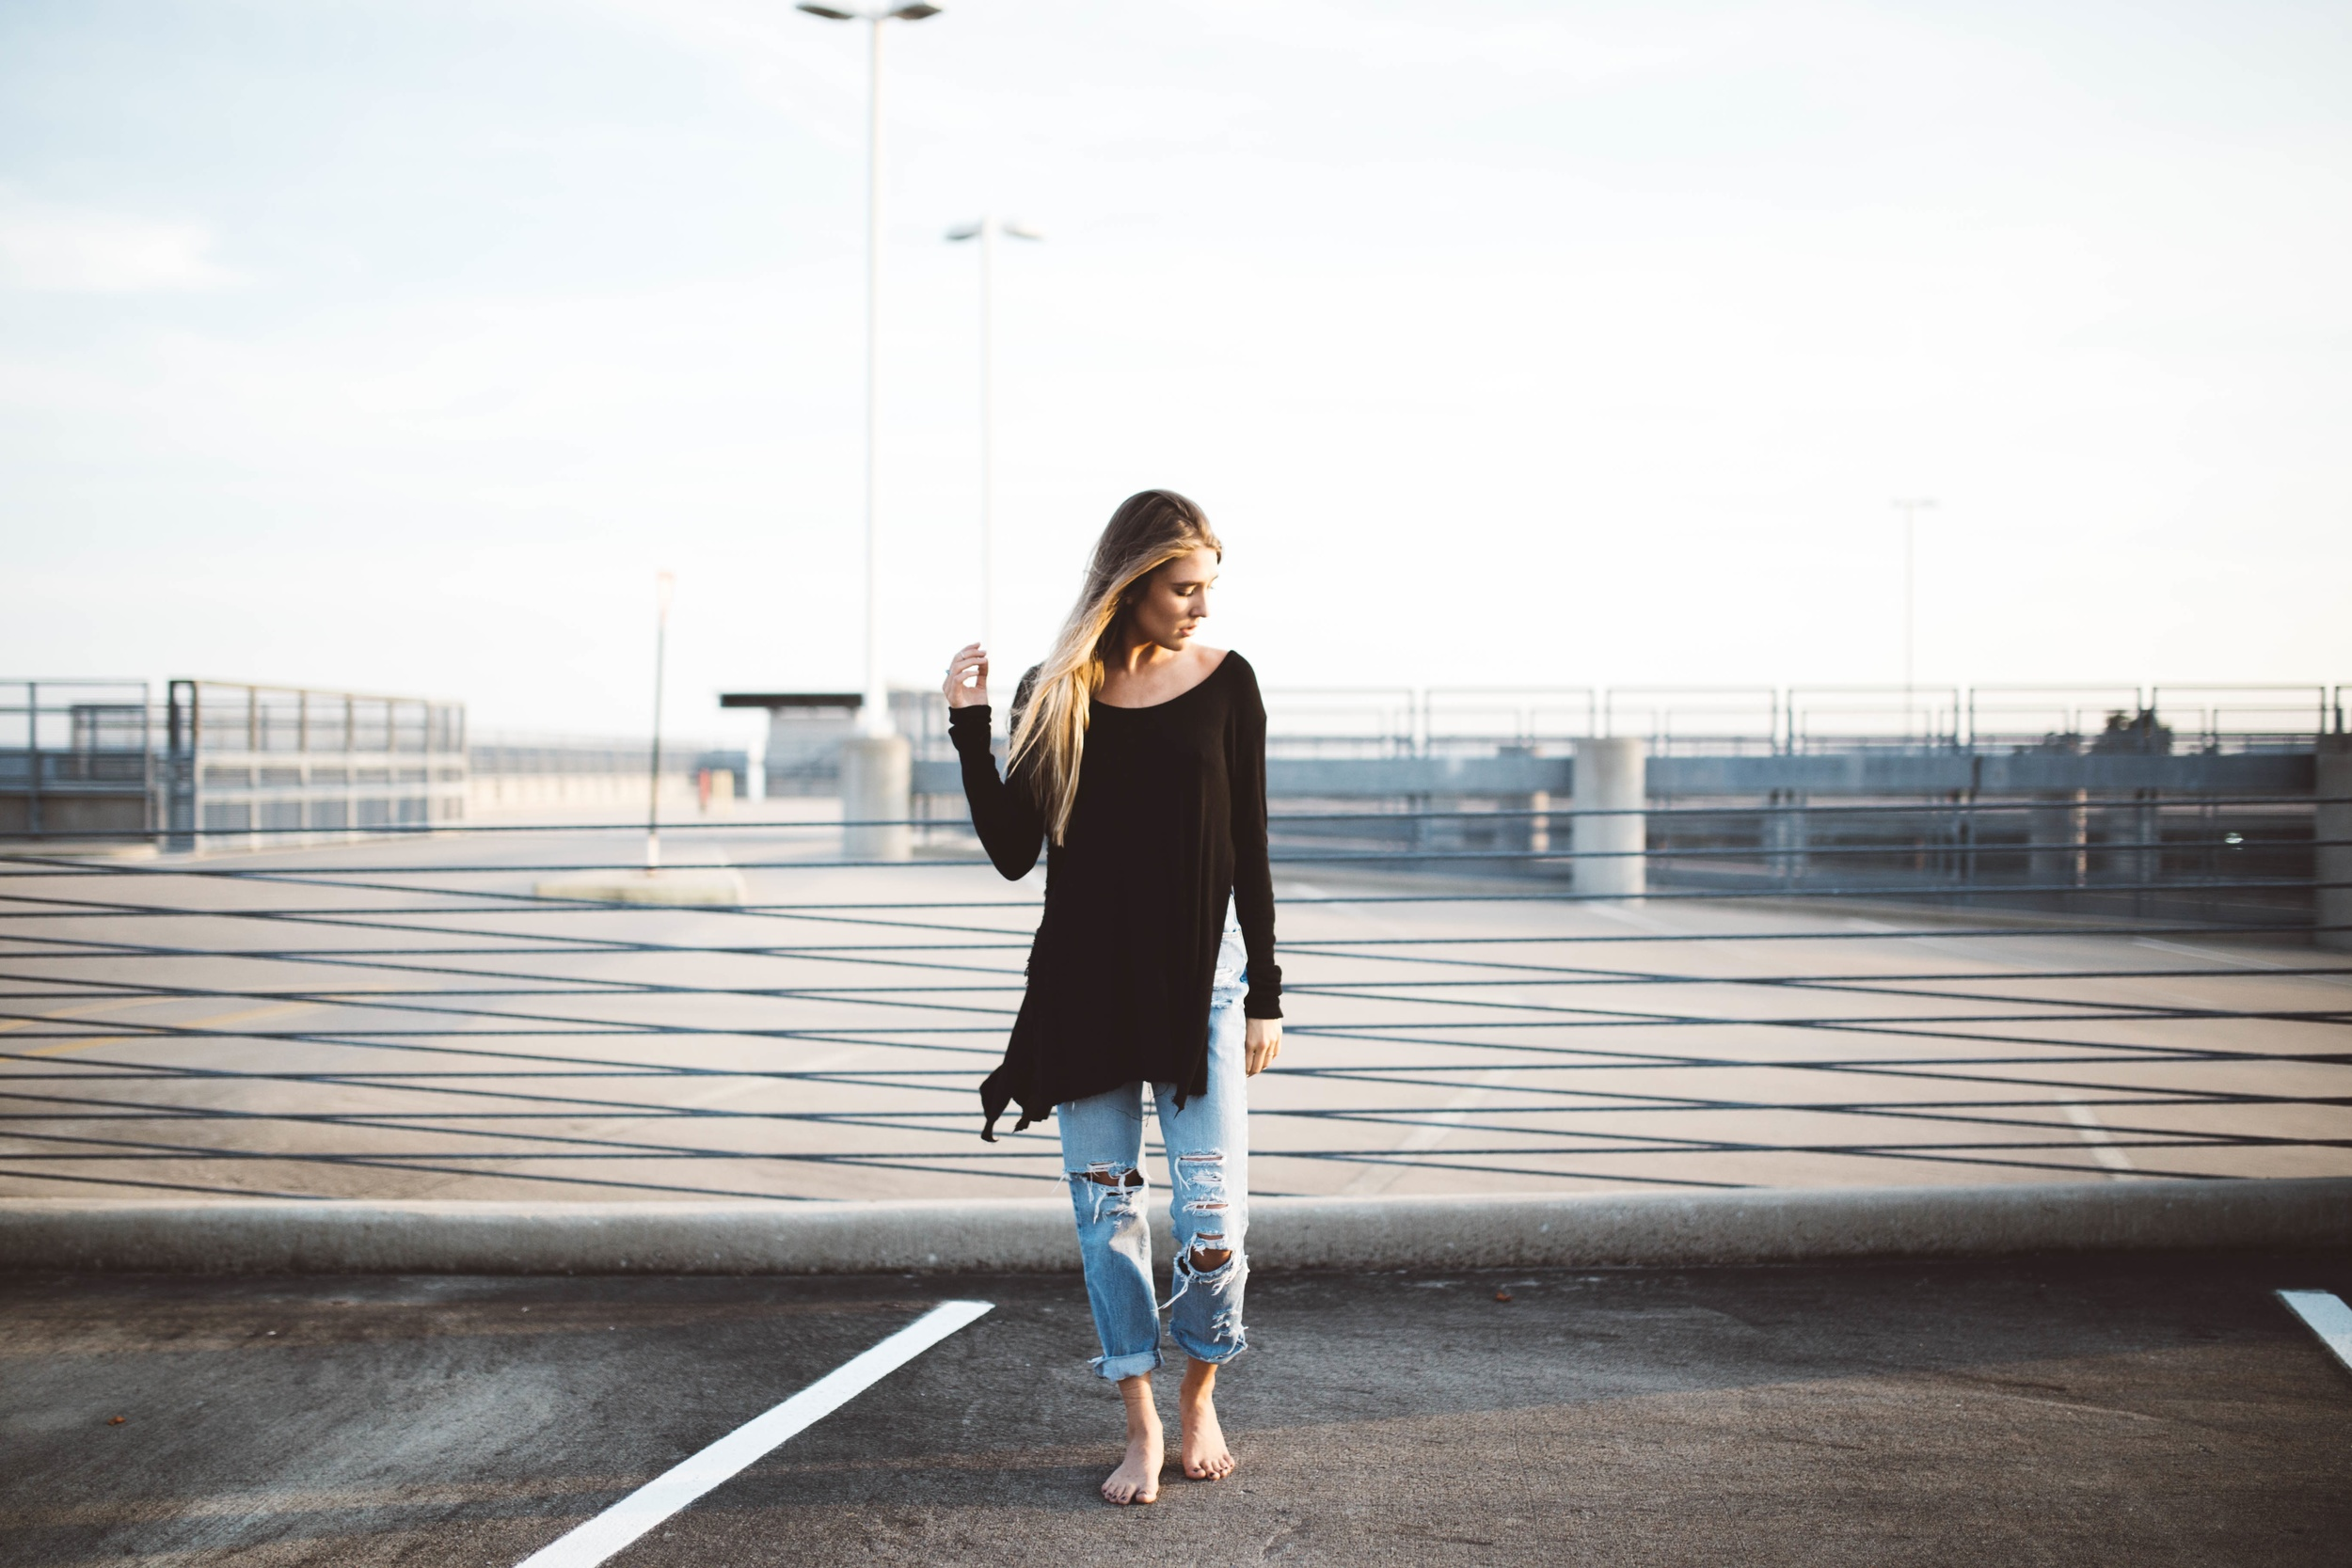 fashion blogging mistakes and how to fix them